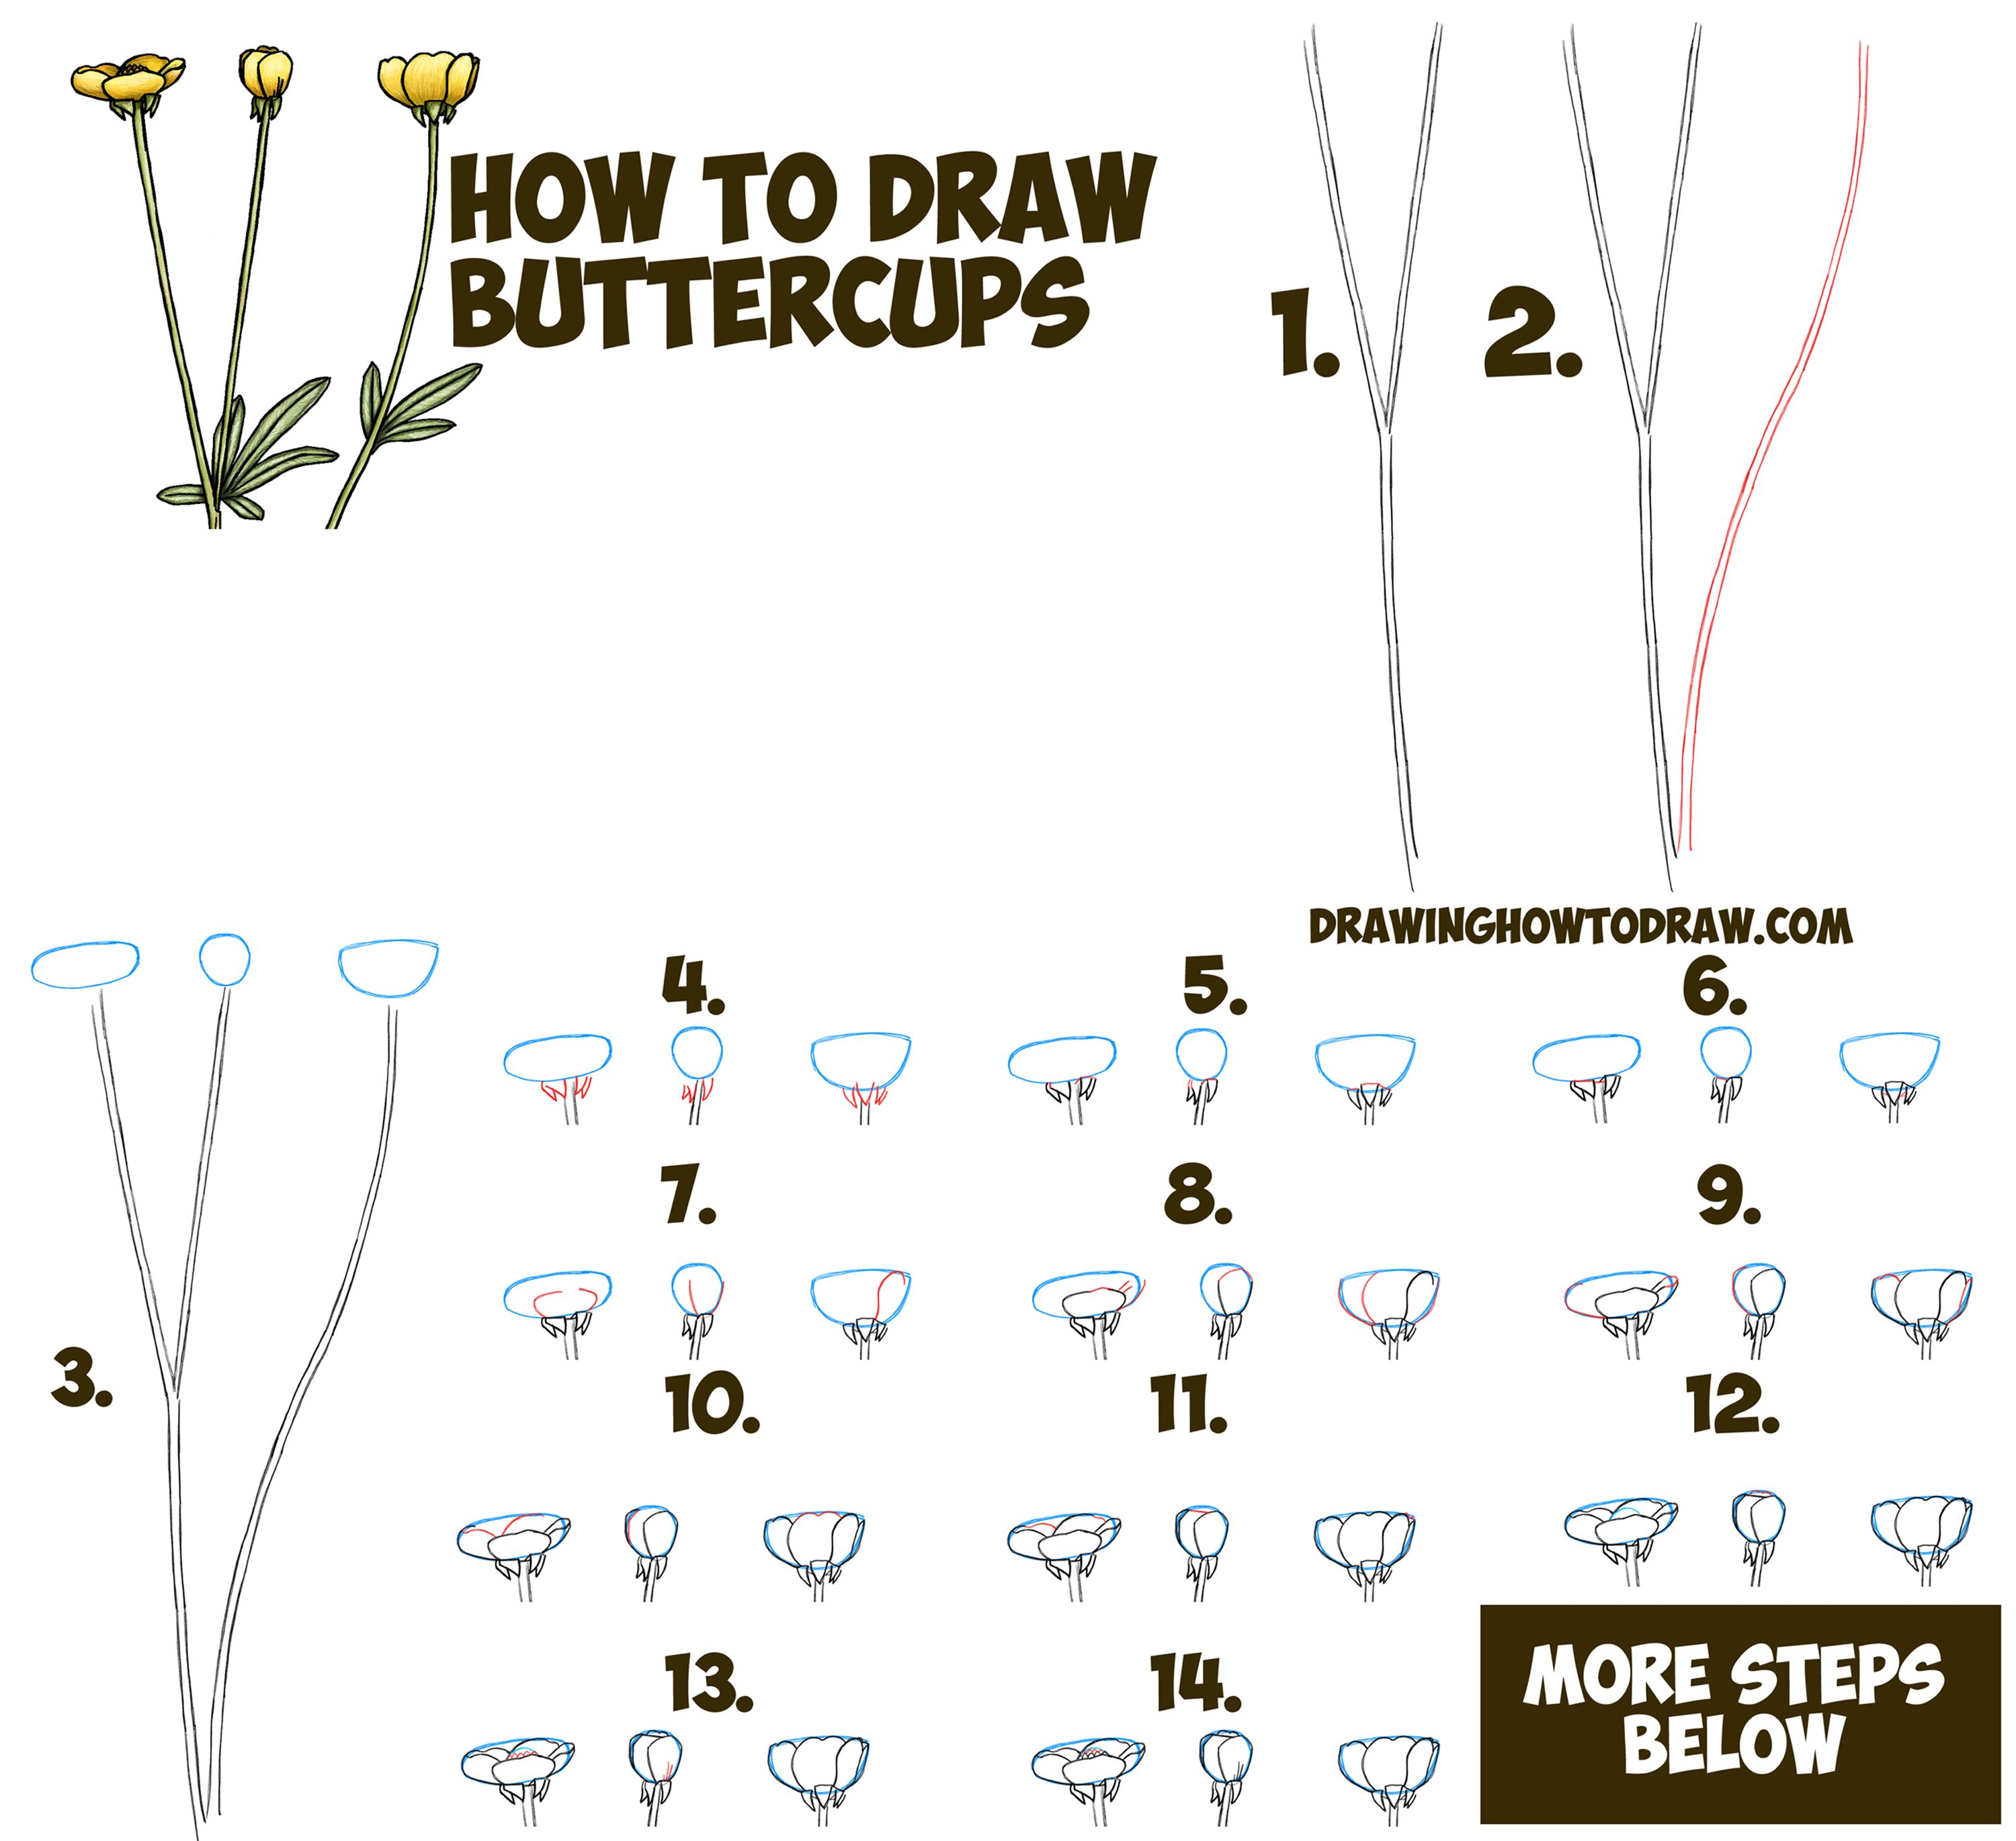 How To Draw A Buttercup Flower Step By Step Drawing Tutorial (buttercups)  Easy For